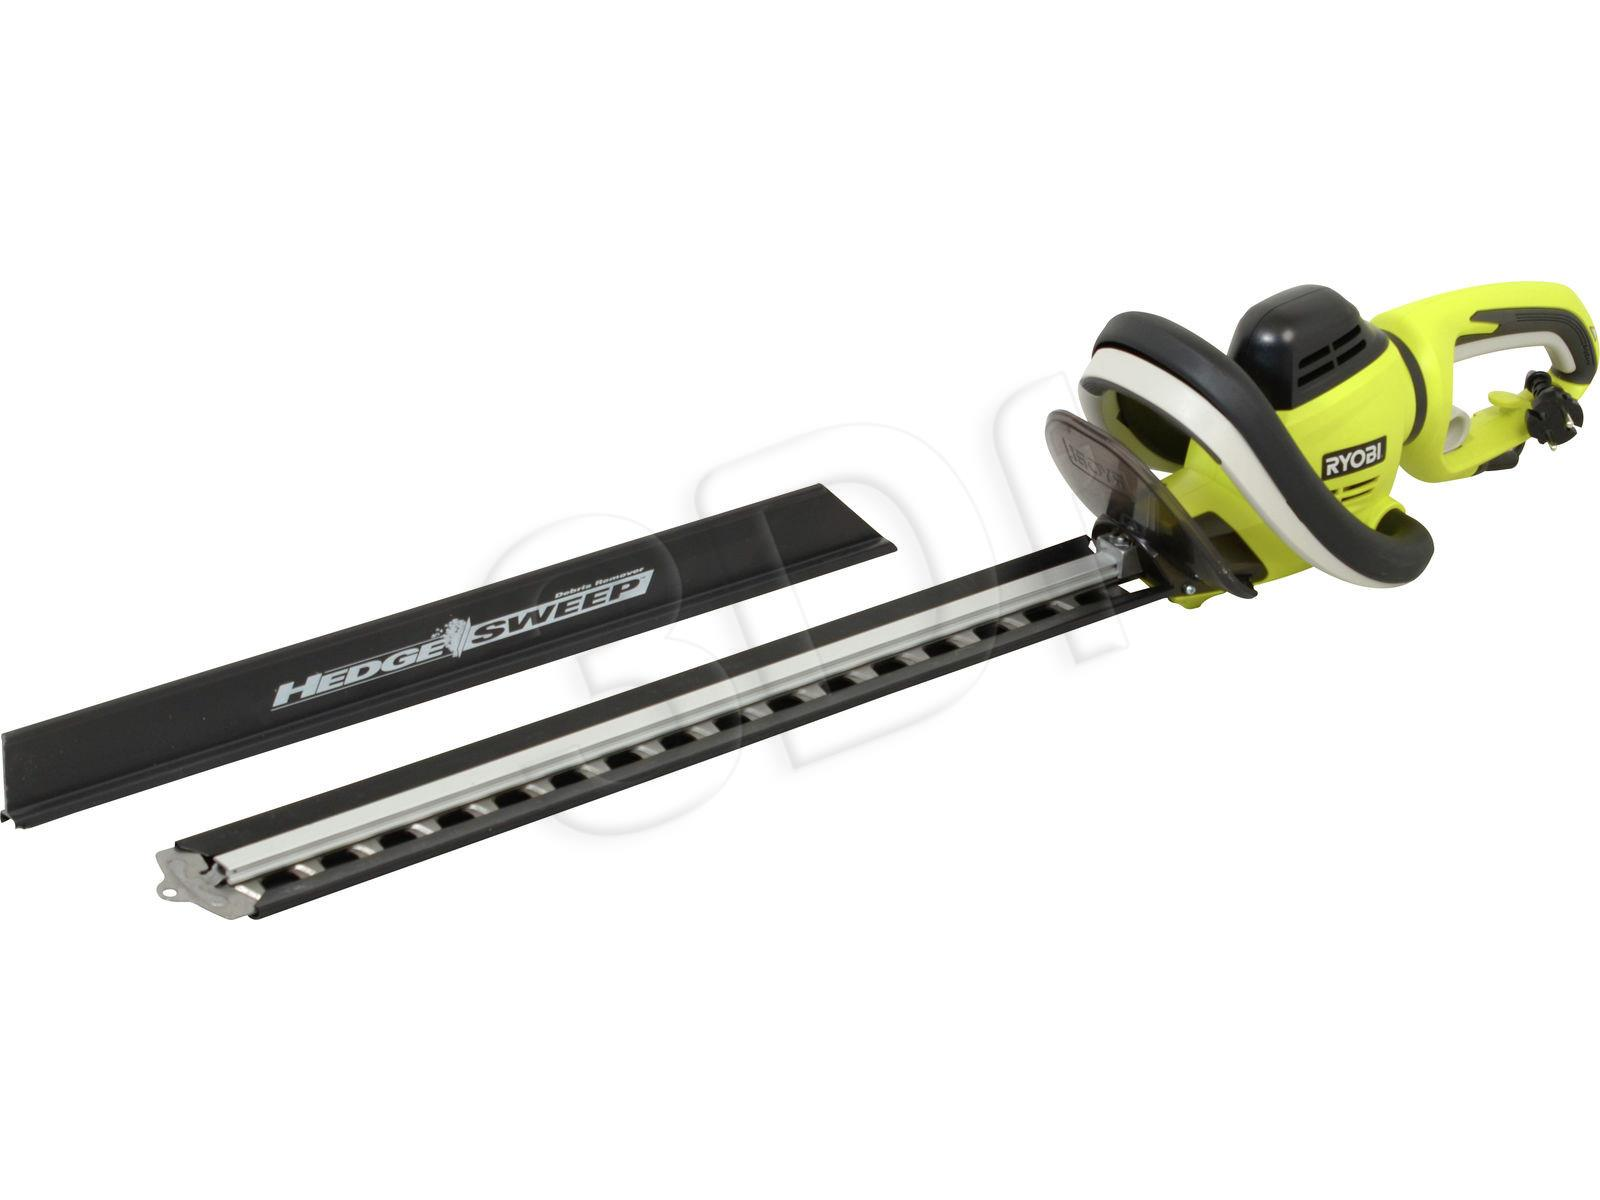 Ryobi RHT6560RL Electric Hedge Trimmer Zāles pļāvējs - Trimmeris